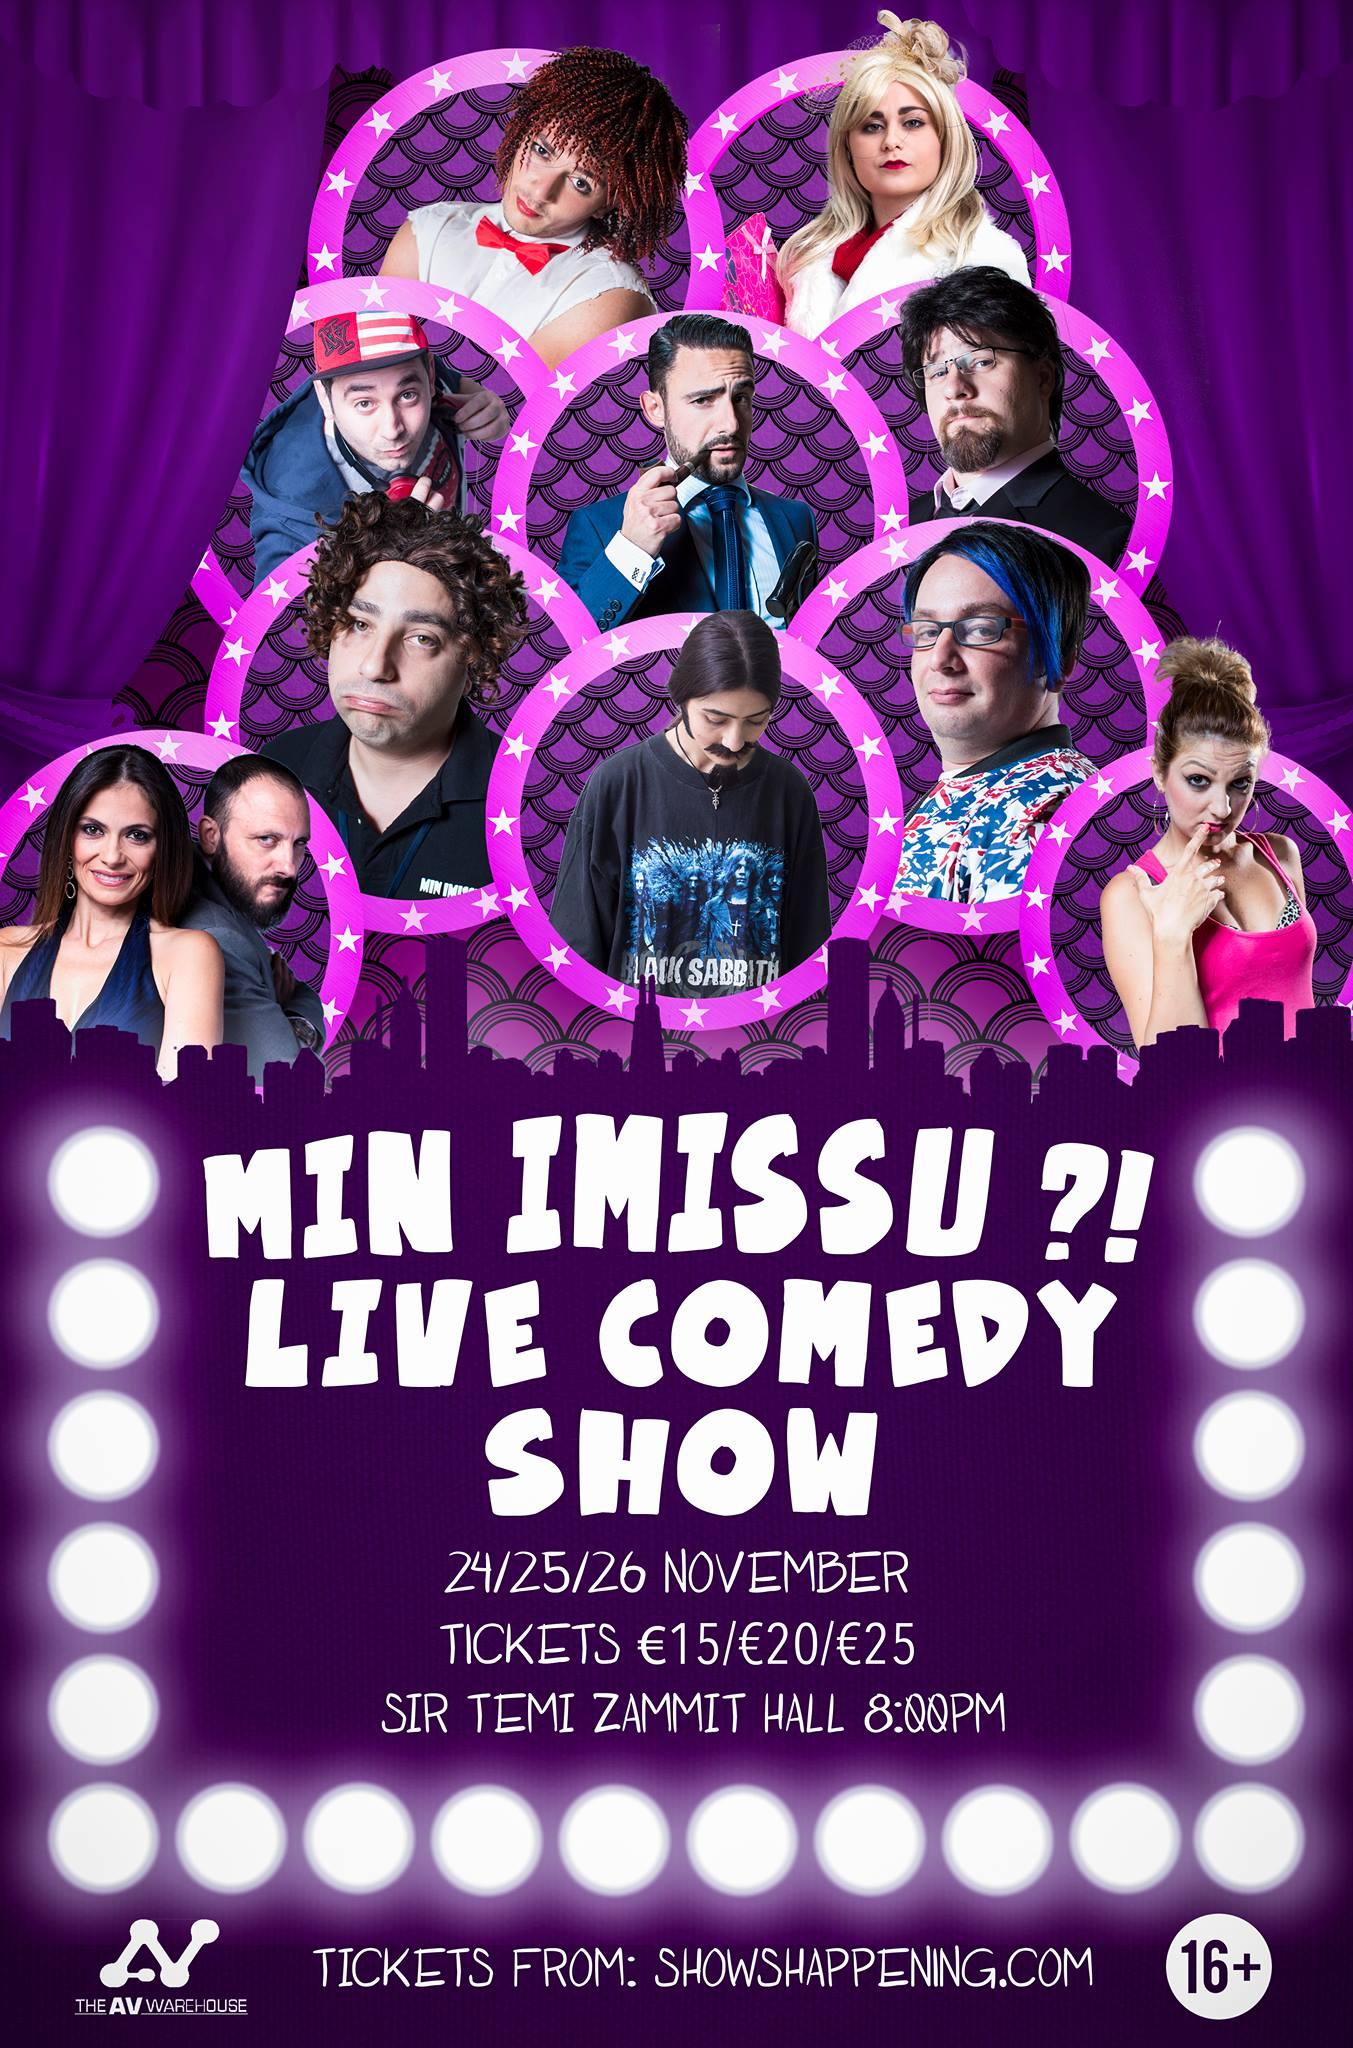 Min Imissu Live Comedy Show flyer